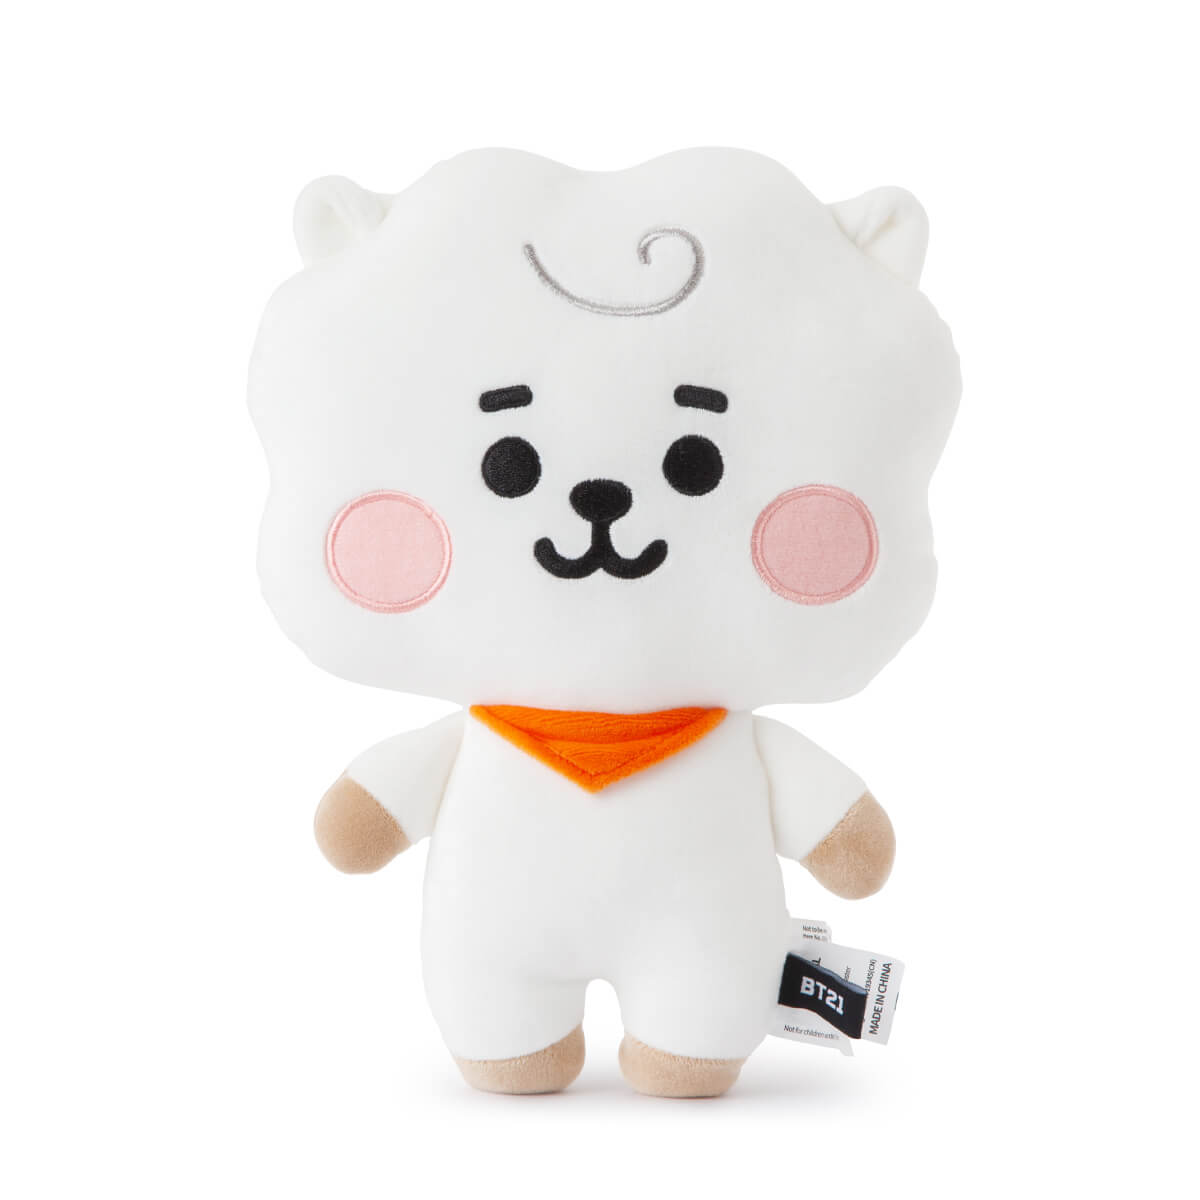 BT21 RJ Baby Mini Body Cushion